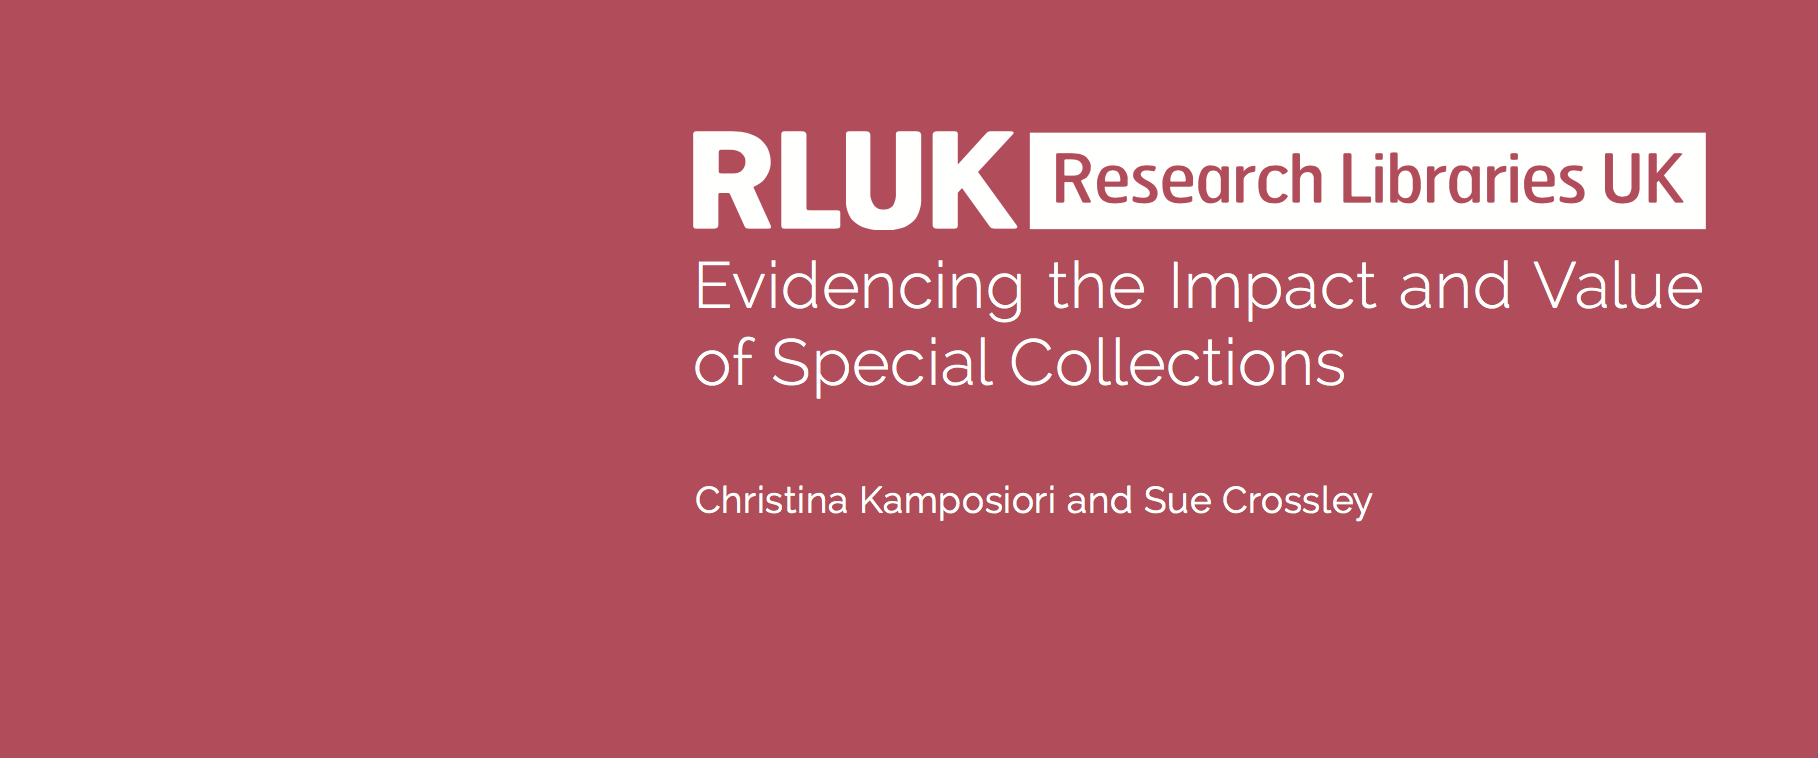 Evidencing the Impact and Value of Special Collections